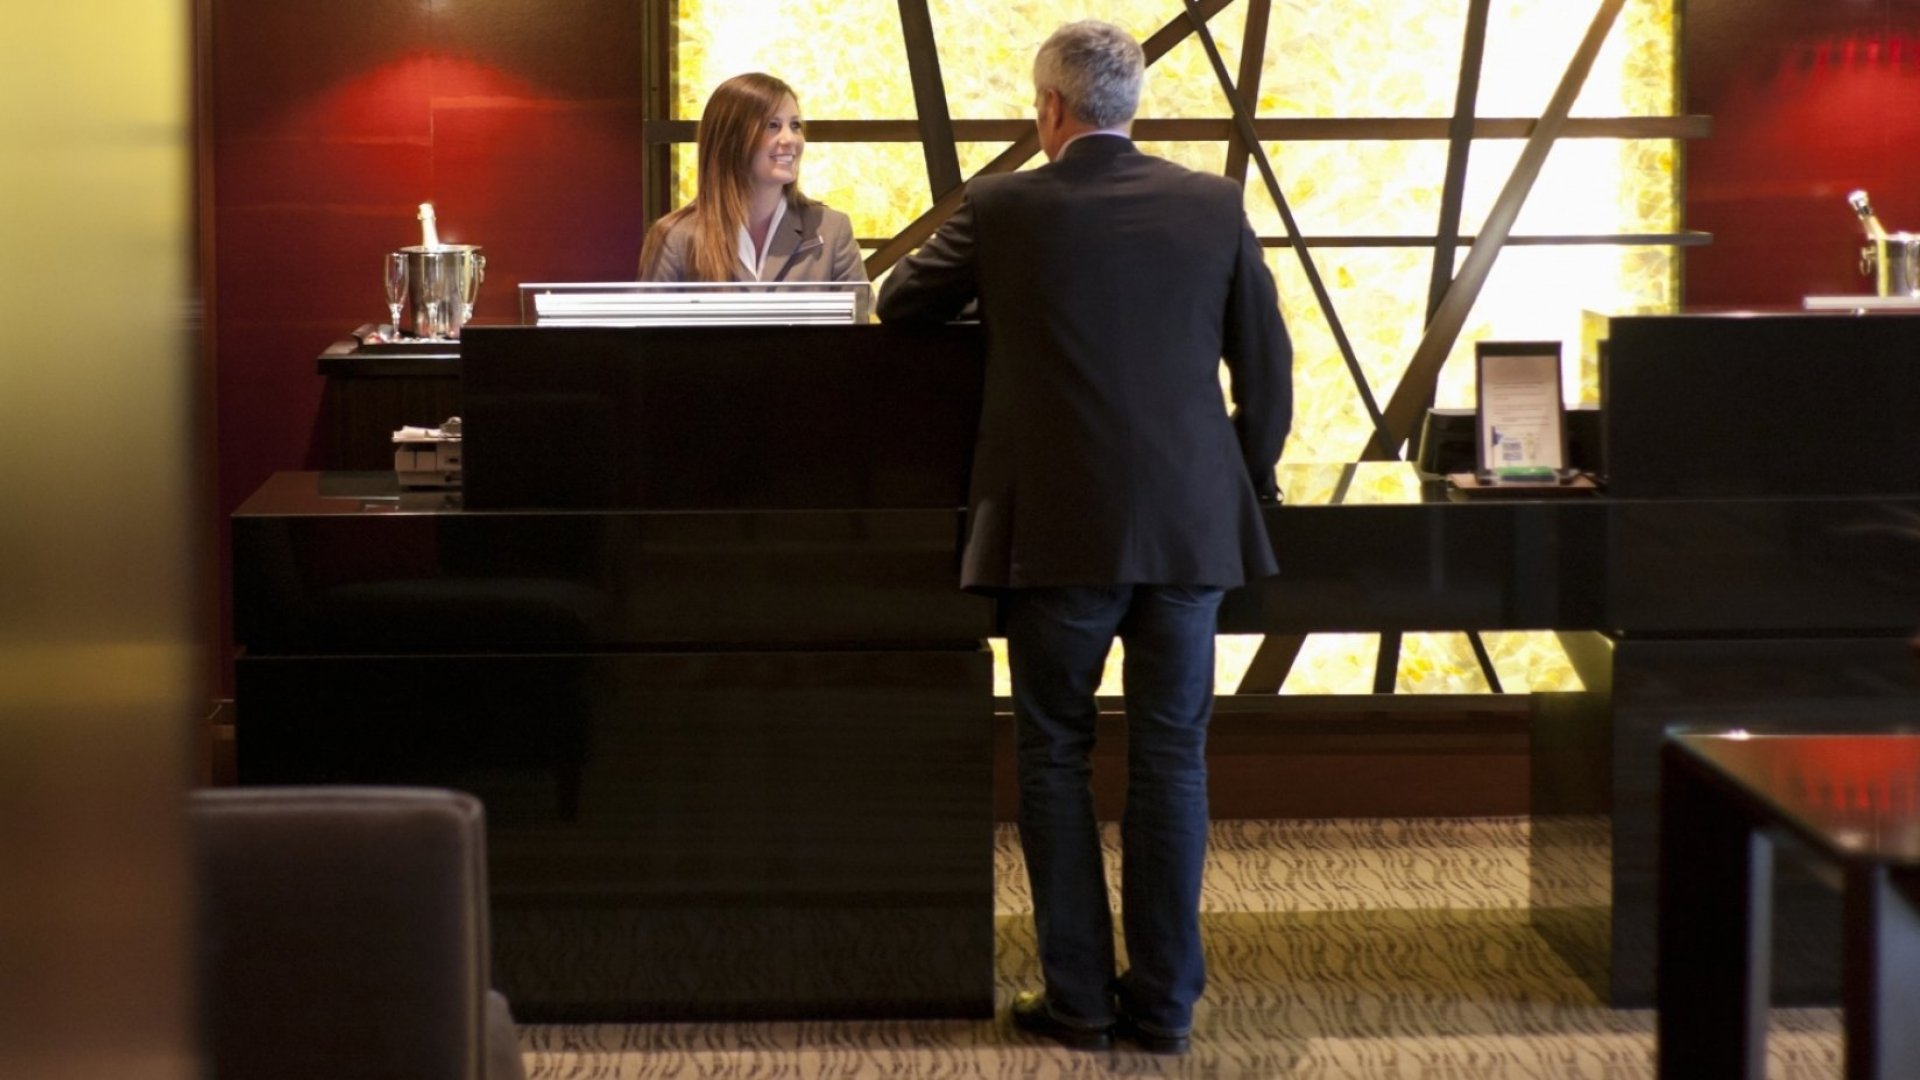 The Biggest, Nastiest, Most Insulting Hotel Fee Is Finally Coming Under a Stunning Attack